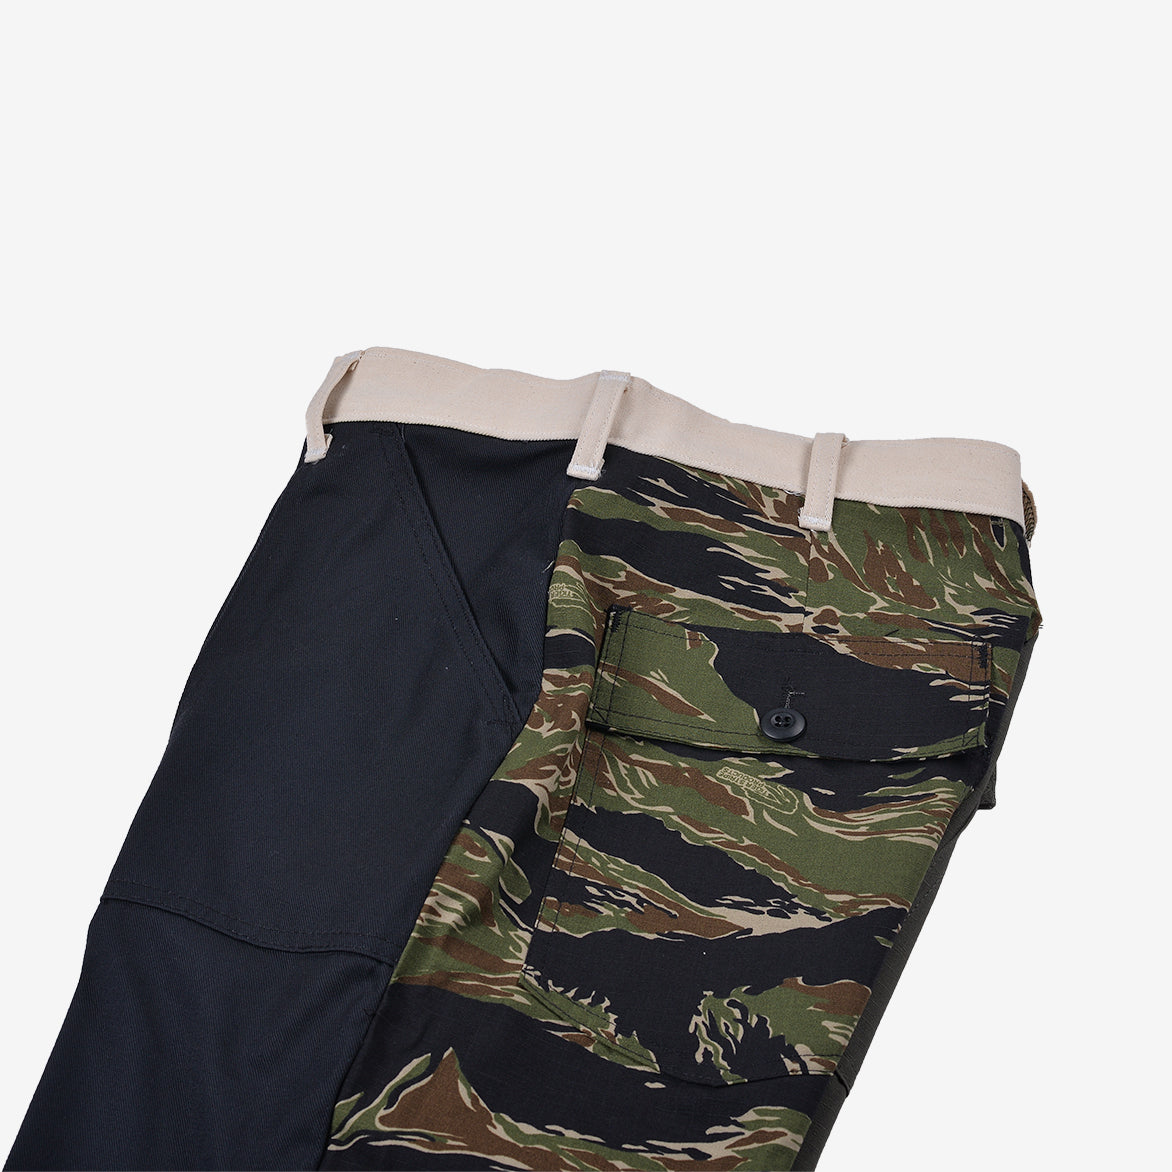 RECONSTRUCT TAPER FATIGUE PANT - WOODLAND / NAVY (4)